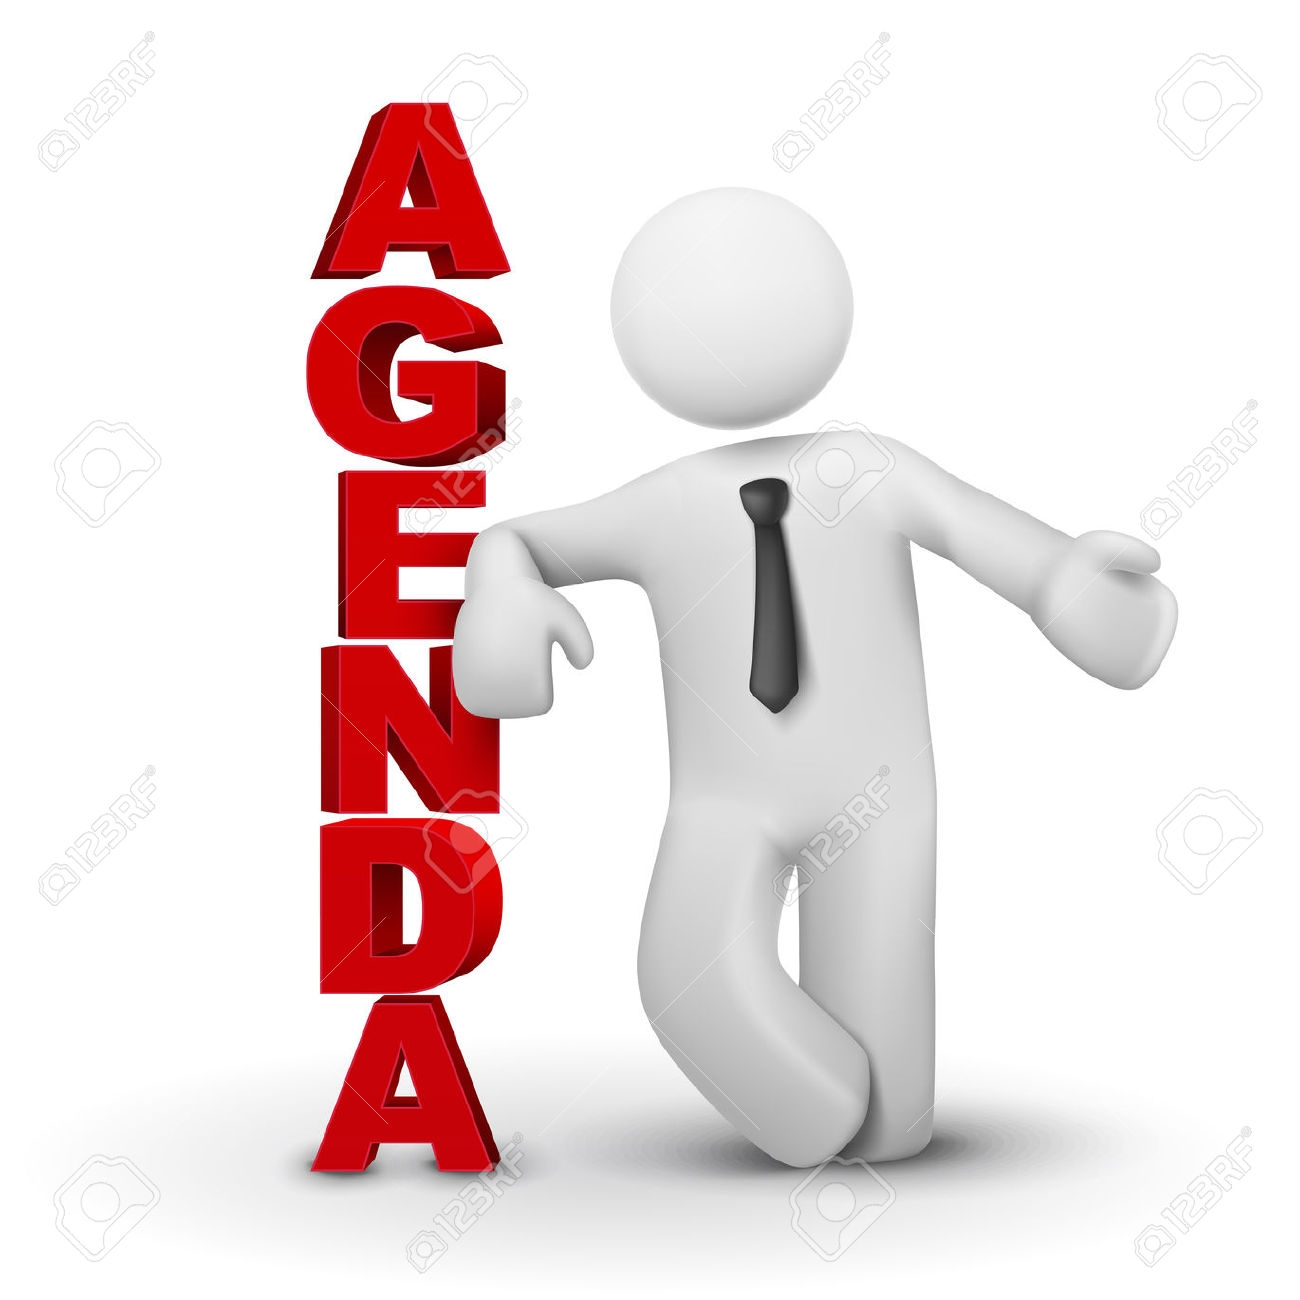 Awesome collection digital b. Agenda clipart